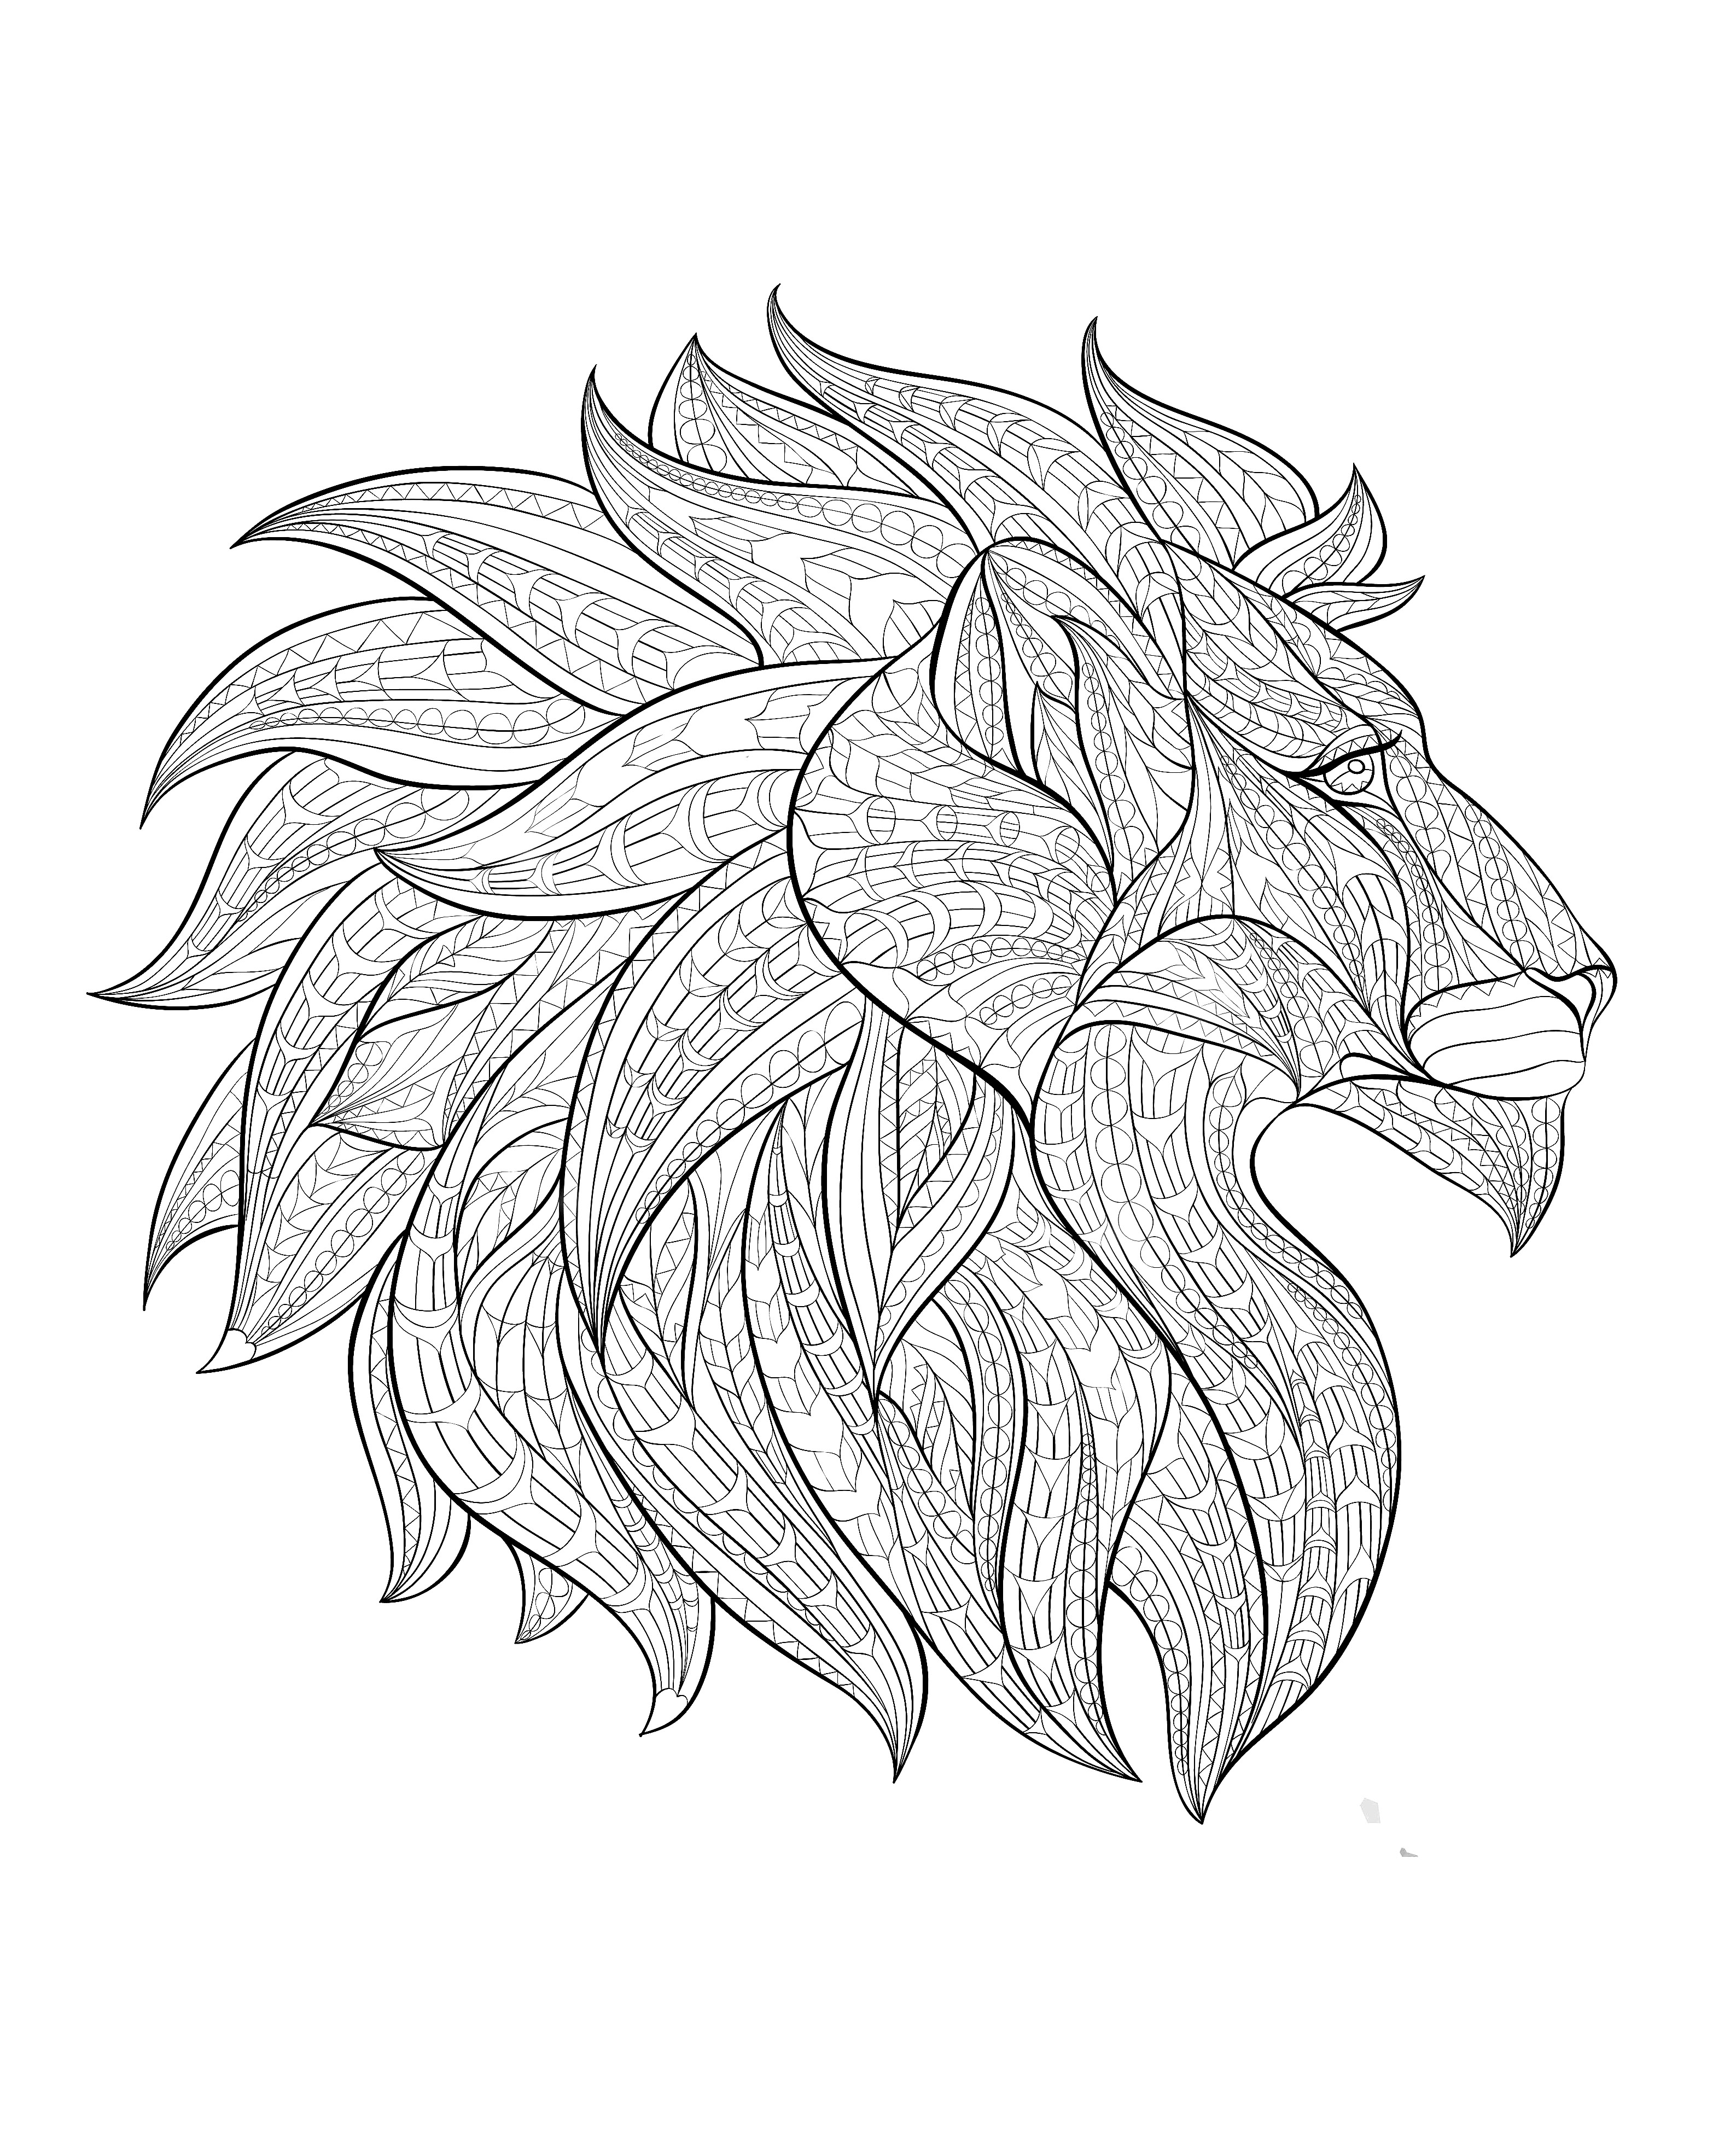 Drawn profile lion Pages for head adults print